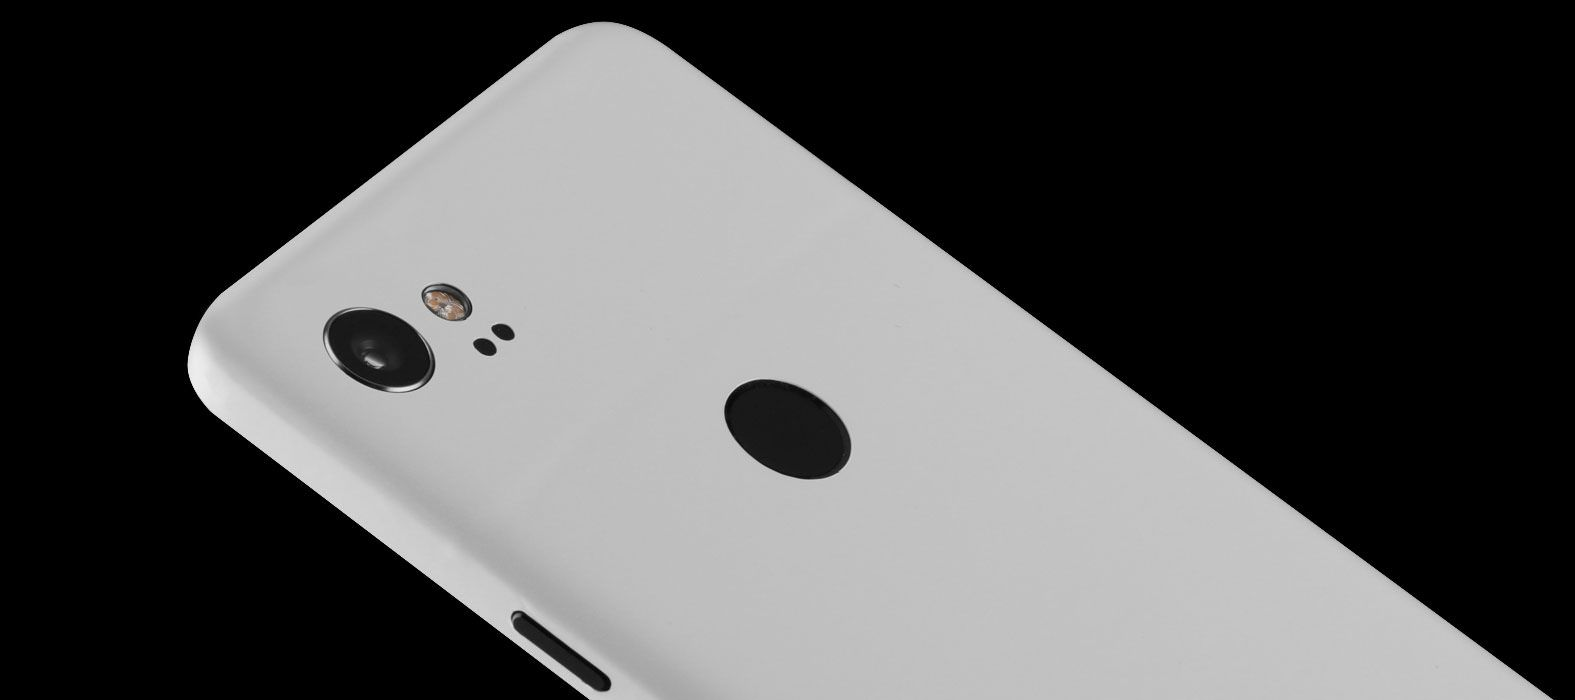 Pixel 2 XL Skins Matte White Wraps & Decals